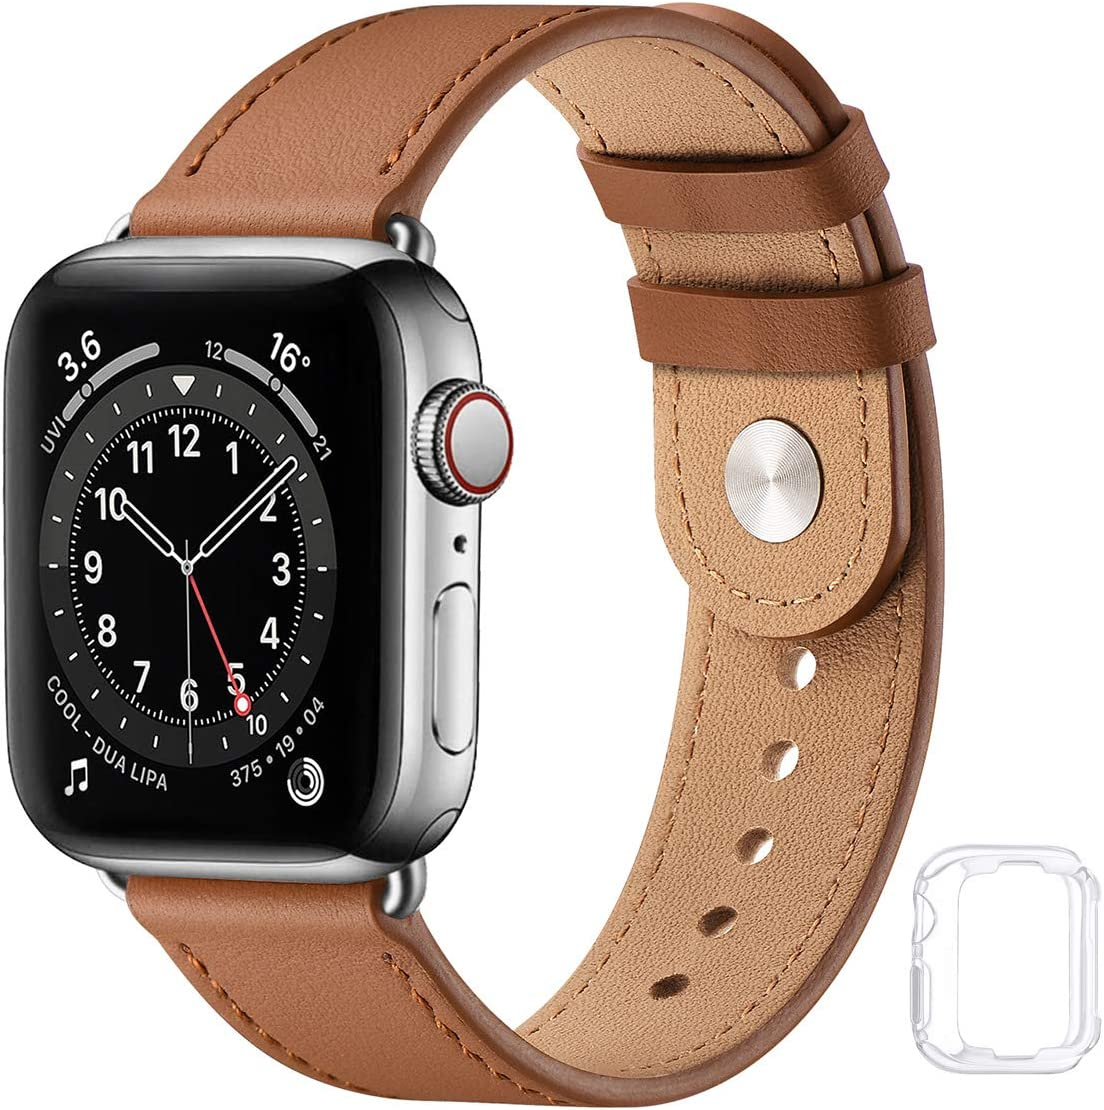 Leather Band Compatible with Apple Watch Bands 44mm 42mm 40mm 38mm, Genuine Soft Leather Replacement Wristband Strap for Men Women for iWatch SE Series 6 5 4 3 2 1(Brown/Silver,42MM 44MM)